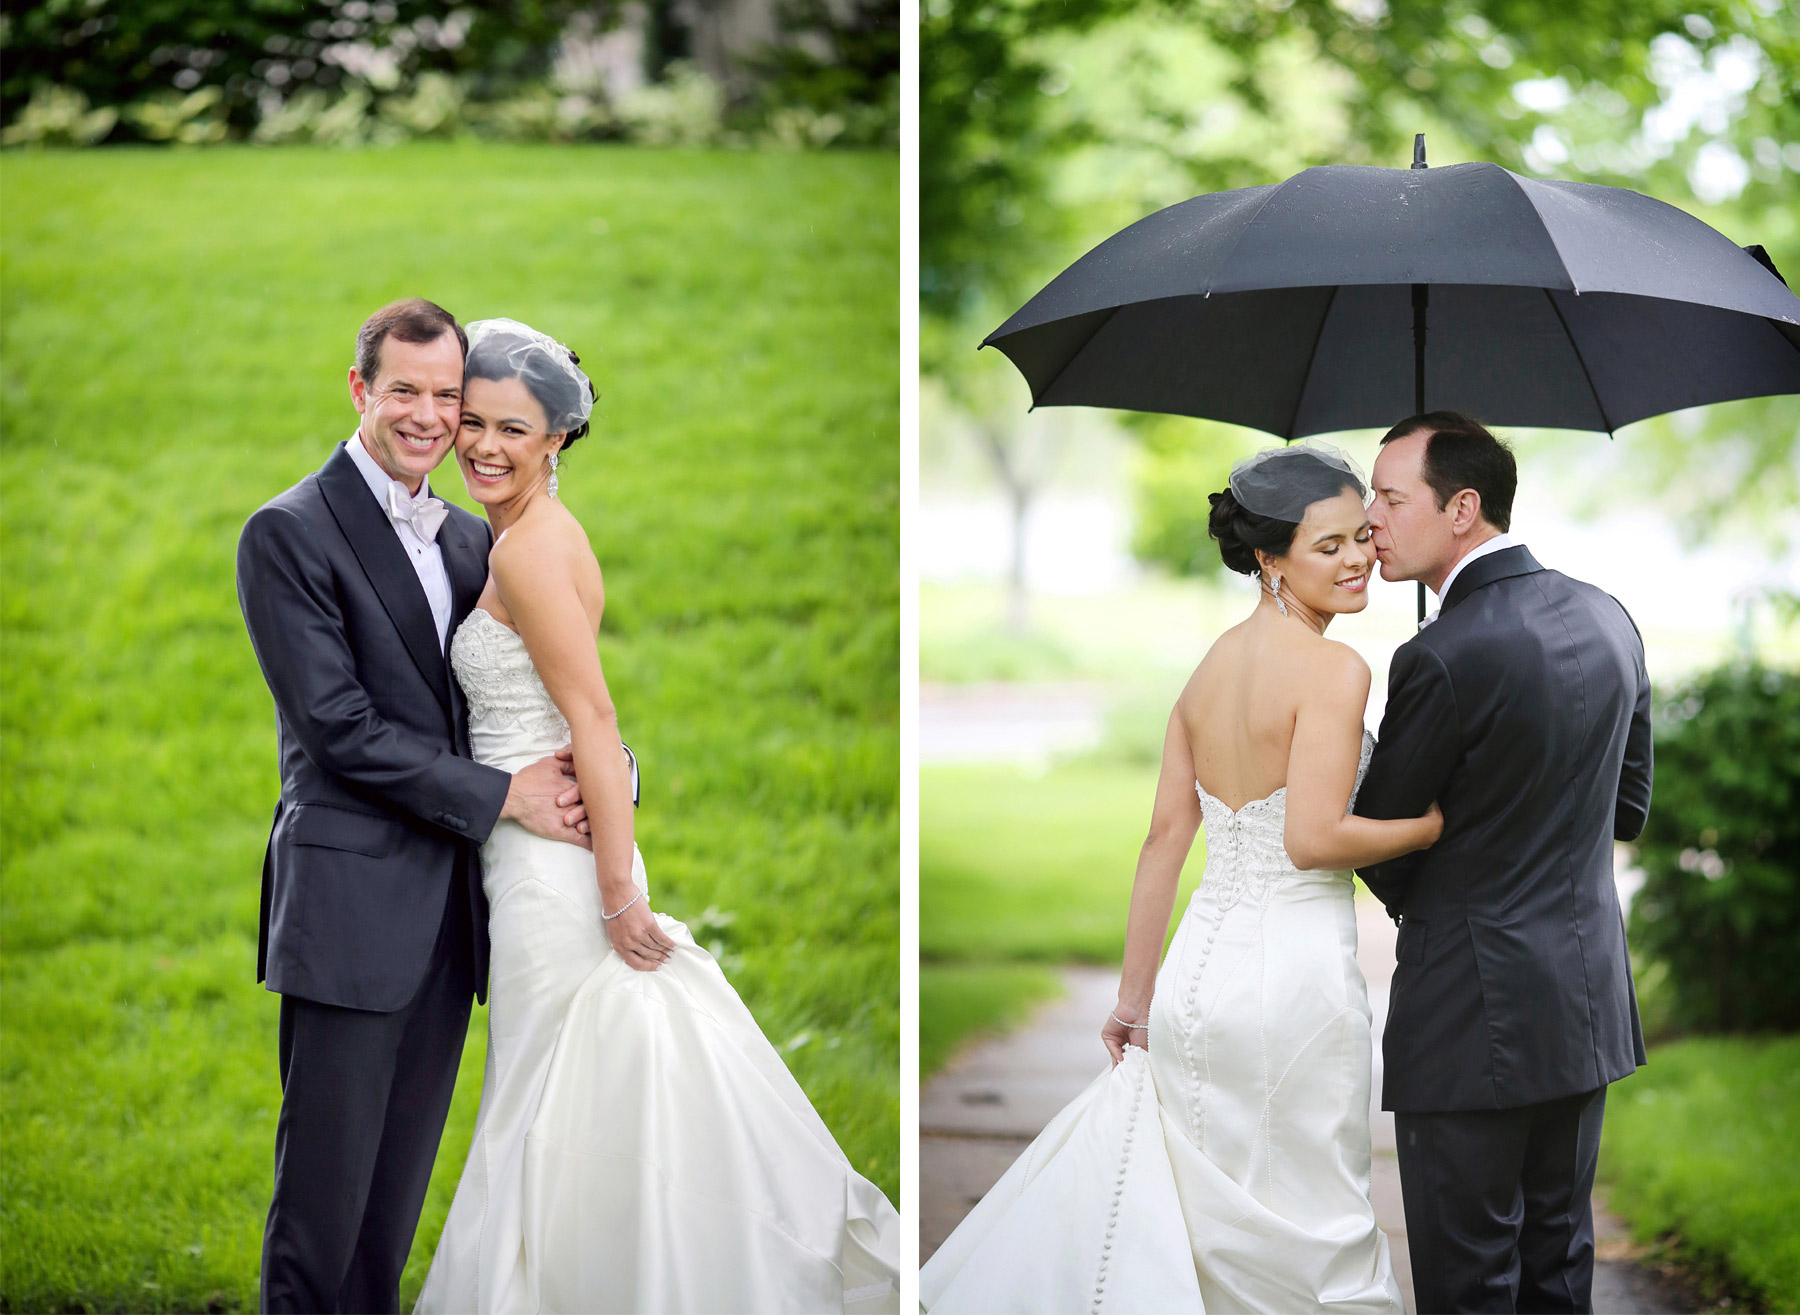 06-Minneapolis-Minnesota-Wedding-Photography-by-Vick-Photography-First-Look-Raining-Wedding-Leticia-&-Jay.jpg